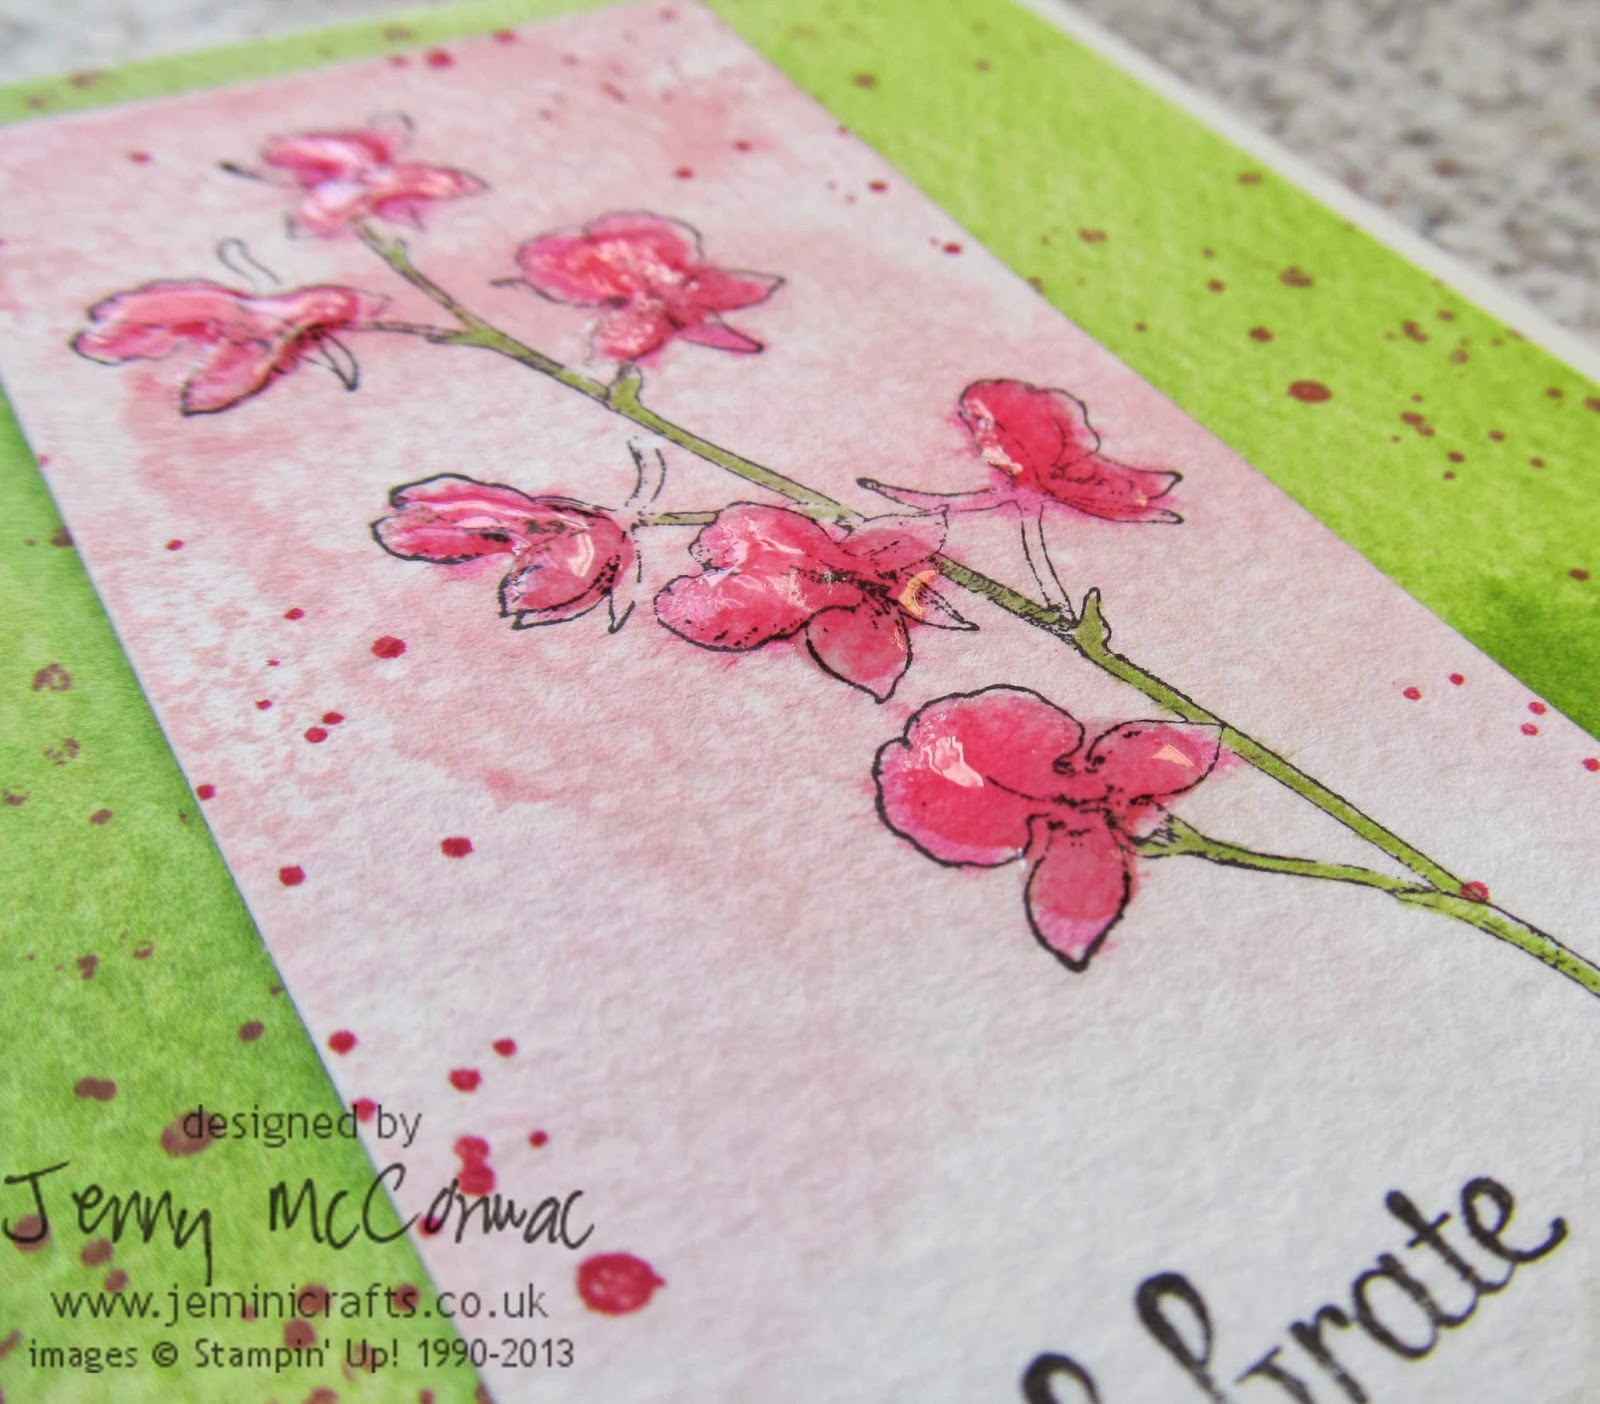 Stampin Up Watercolour Cards 2014 www.jeminicrafts.co.uk